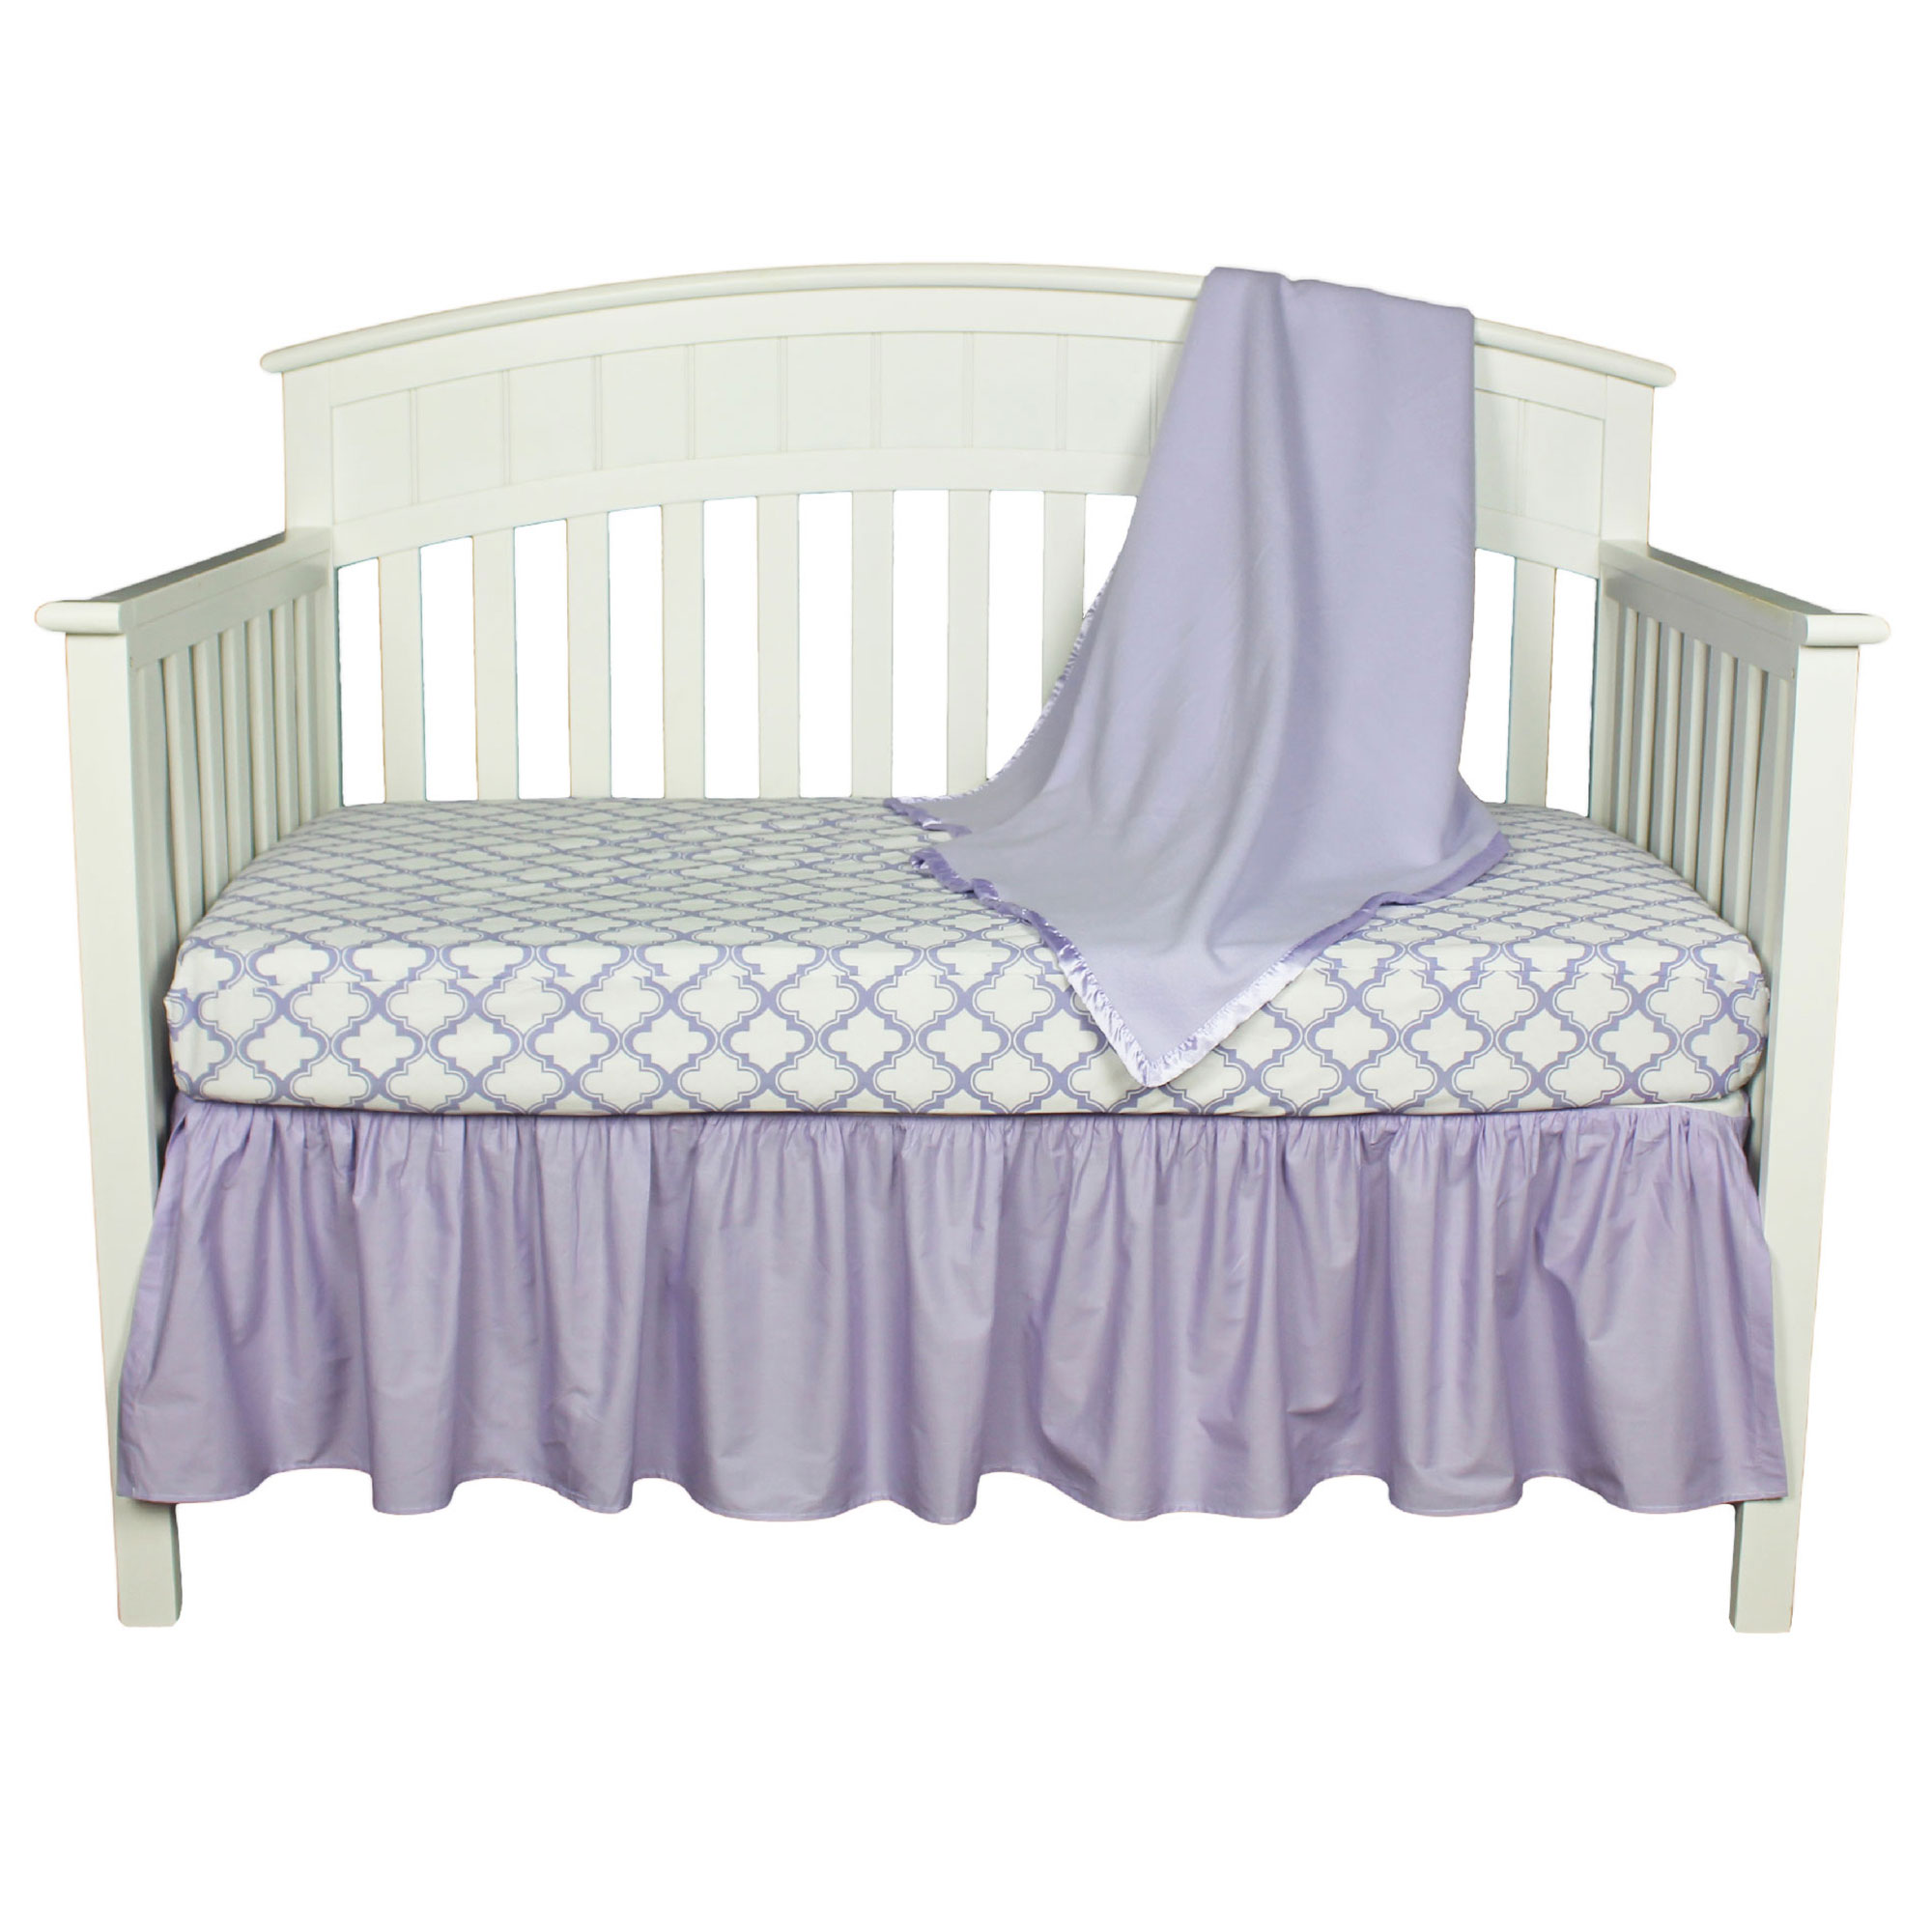 American Baby Company Crib Bedding Set - Lavender Moroccan Ogee - 3 Piece Baby Crib Bedding Set with Fleece Blanket